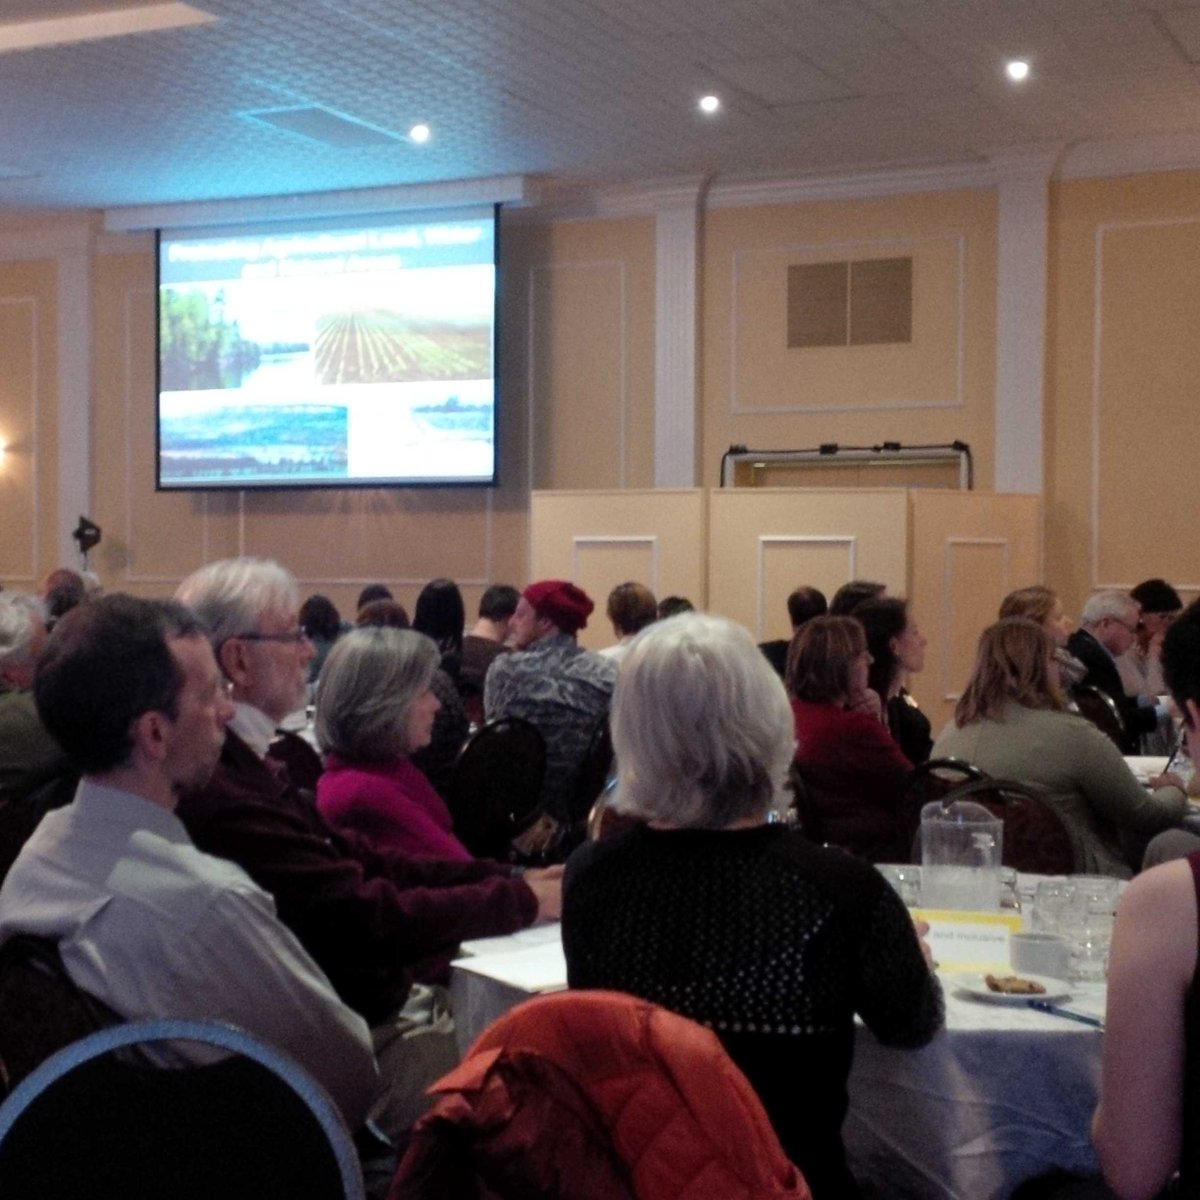 Good turnout for review of ON Growth Plan, Greenbelt+others. Started in Waterloo Region leading the way #landuseON http://t.co/L90p9YqO8j